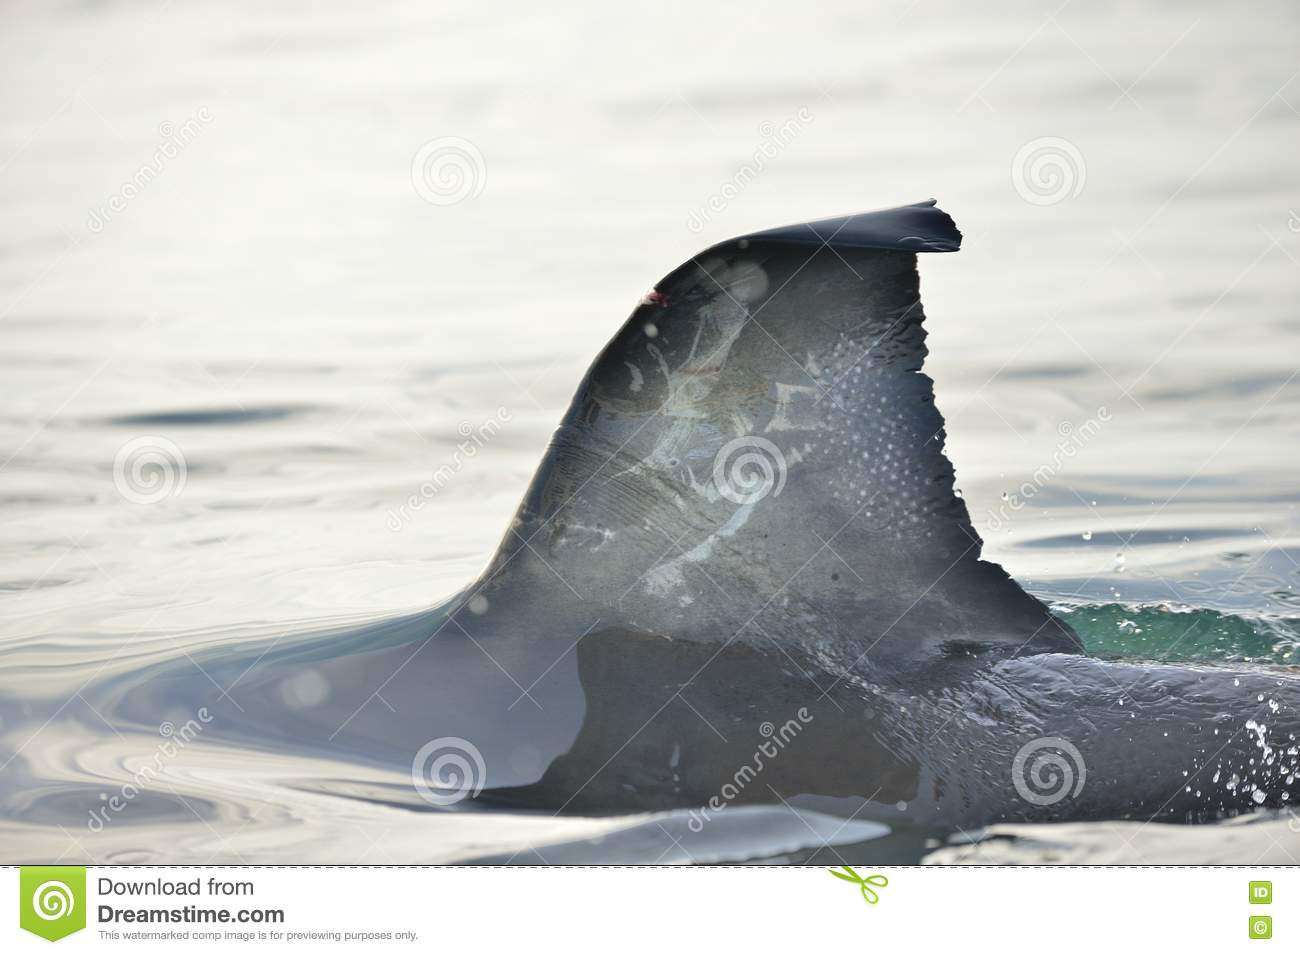 Shark fin in the water  stock image  Image of deadly - 82012817